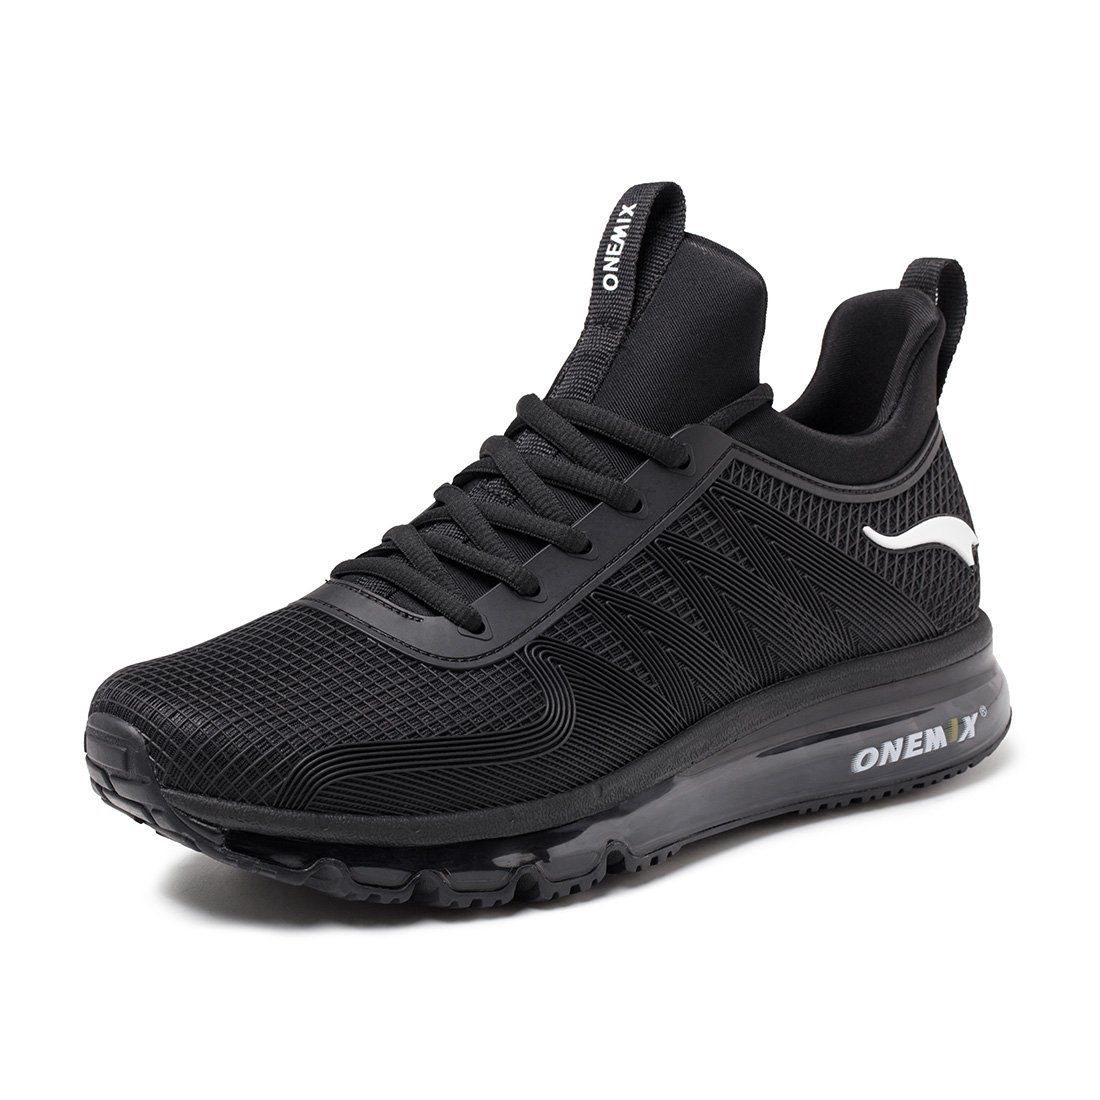 ONEMIX Men's Air Cushion Sports Running Shoes Lace-up Casual Sneaker Black 11 US QH45 by ONEMIX